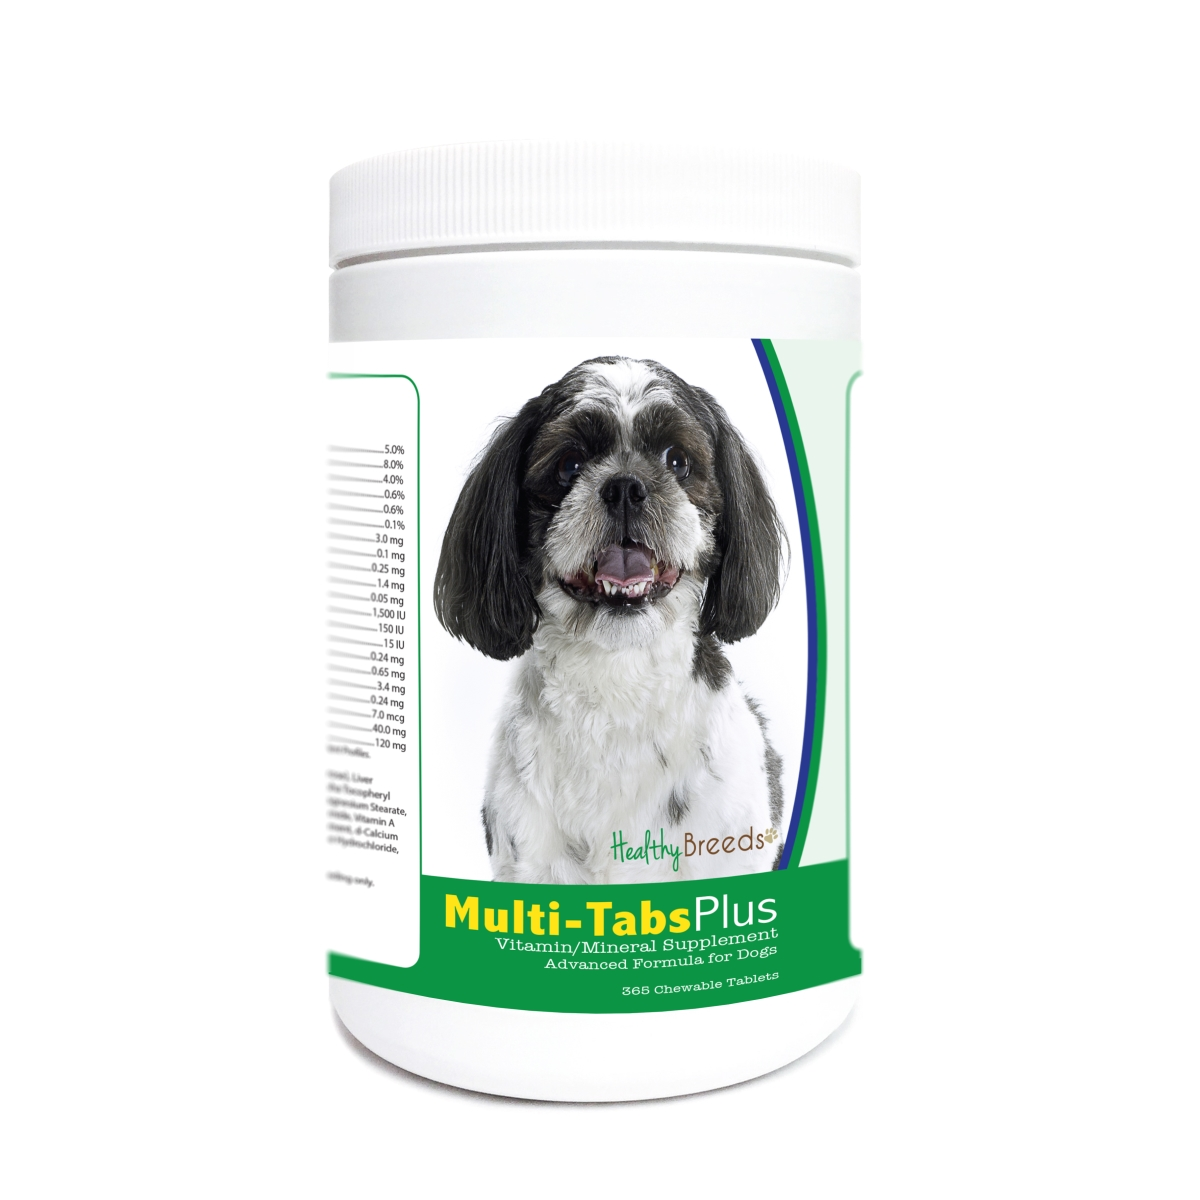 Healthy Breeds 840235179917 Shih-Poo Multi-Tabs Plus Chewable Tablets - 365 Count